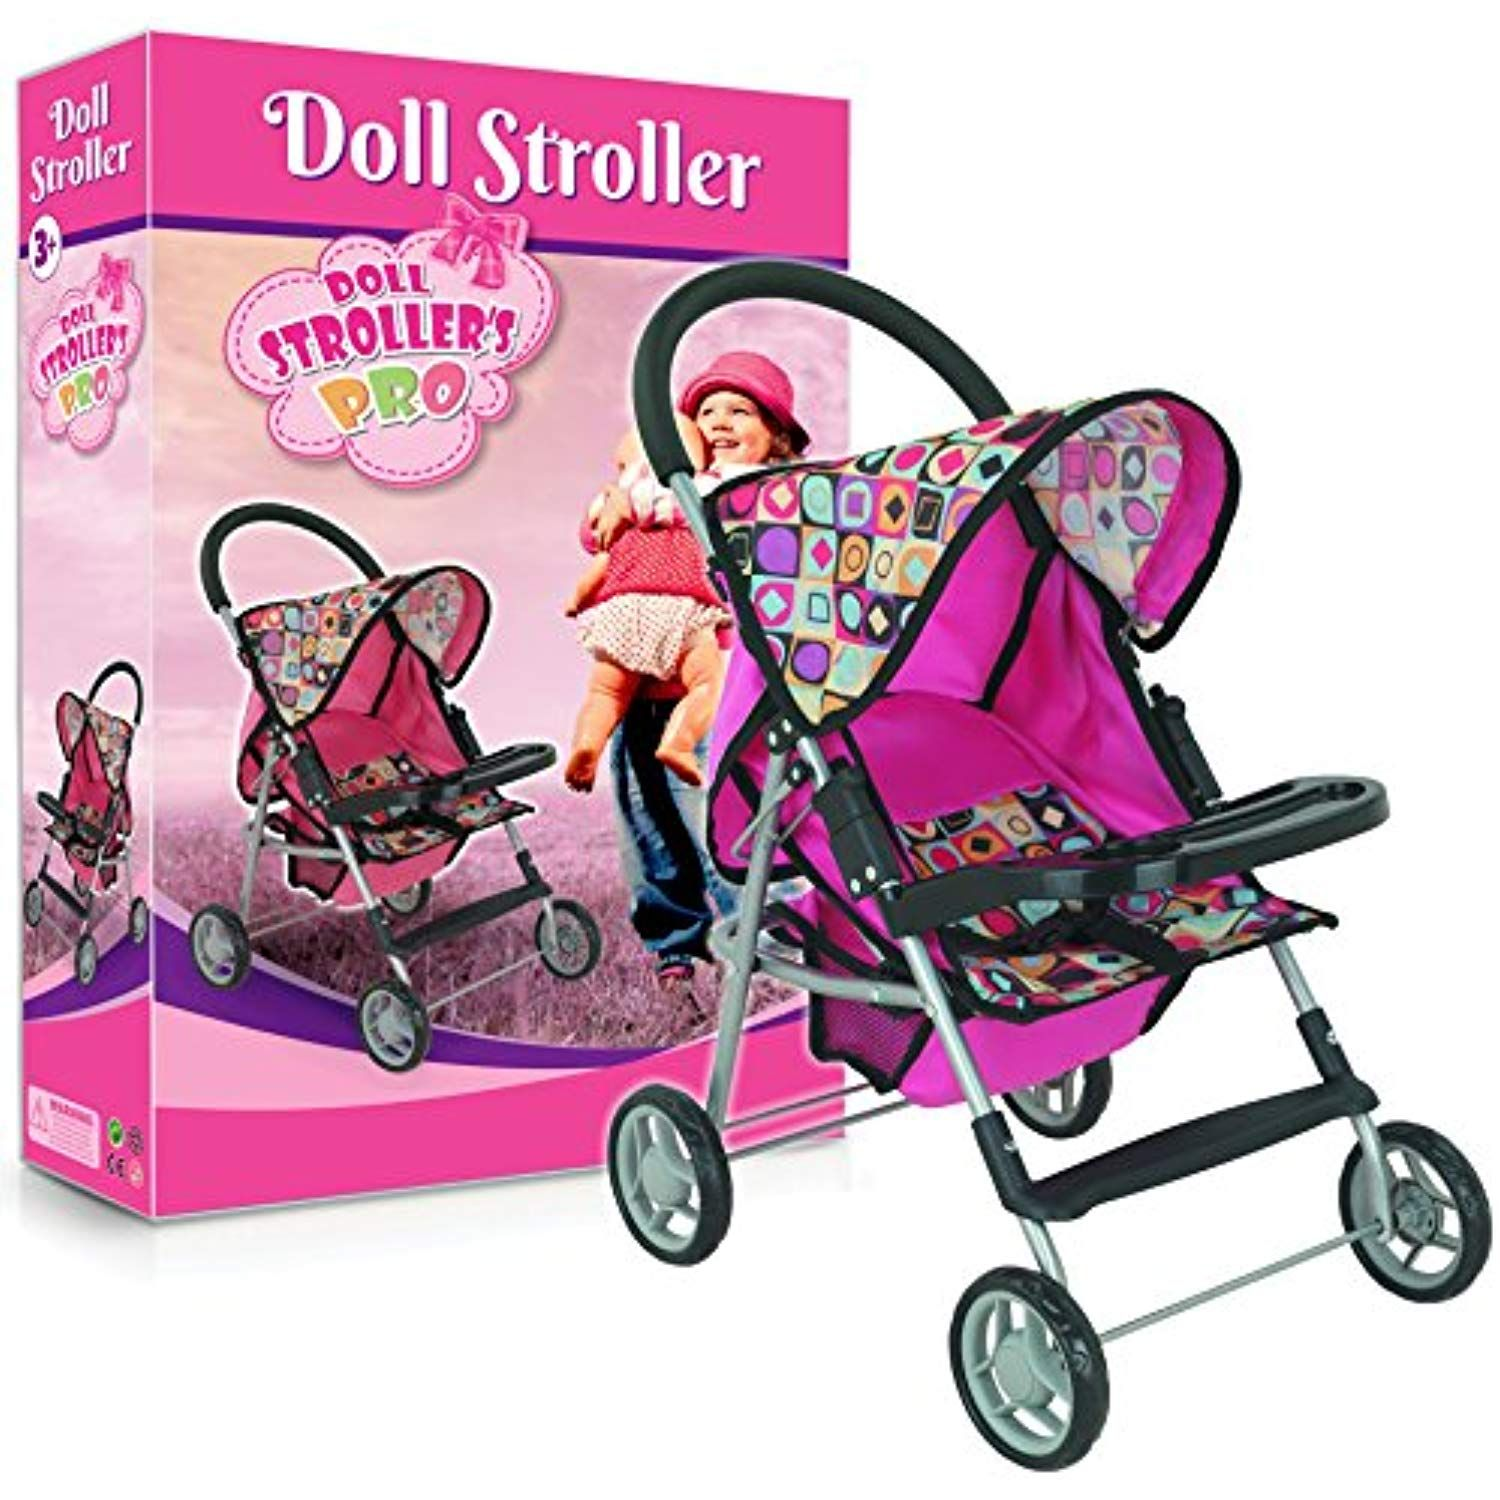 My First Doll Stroller Super Cute with front table and